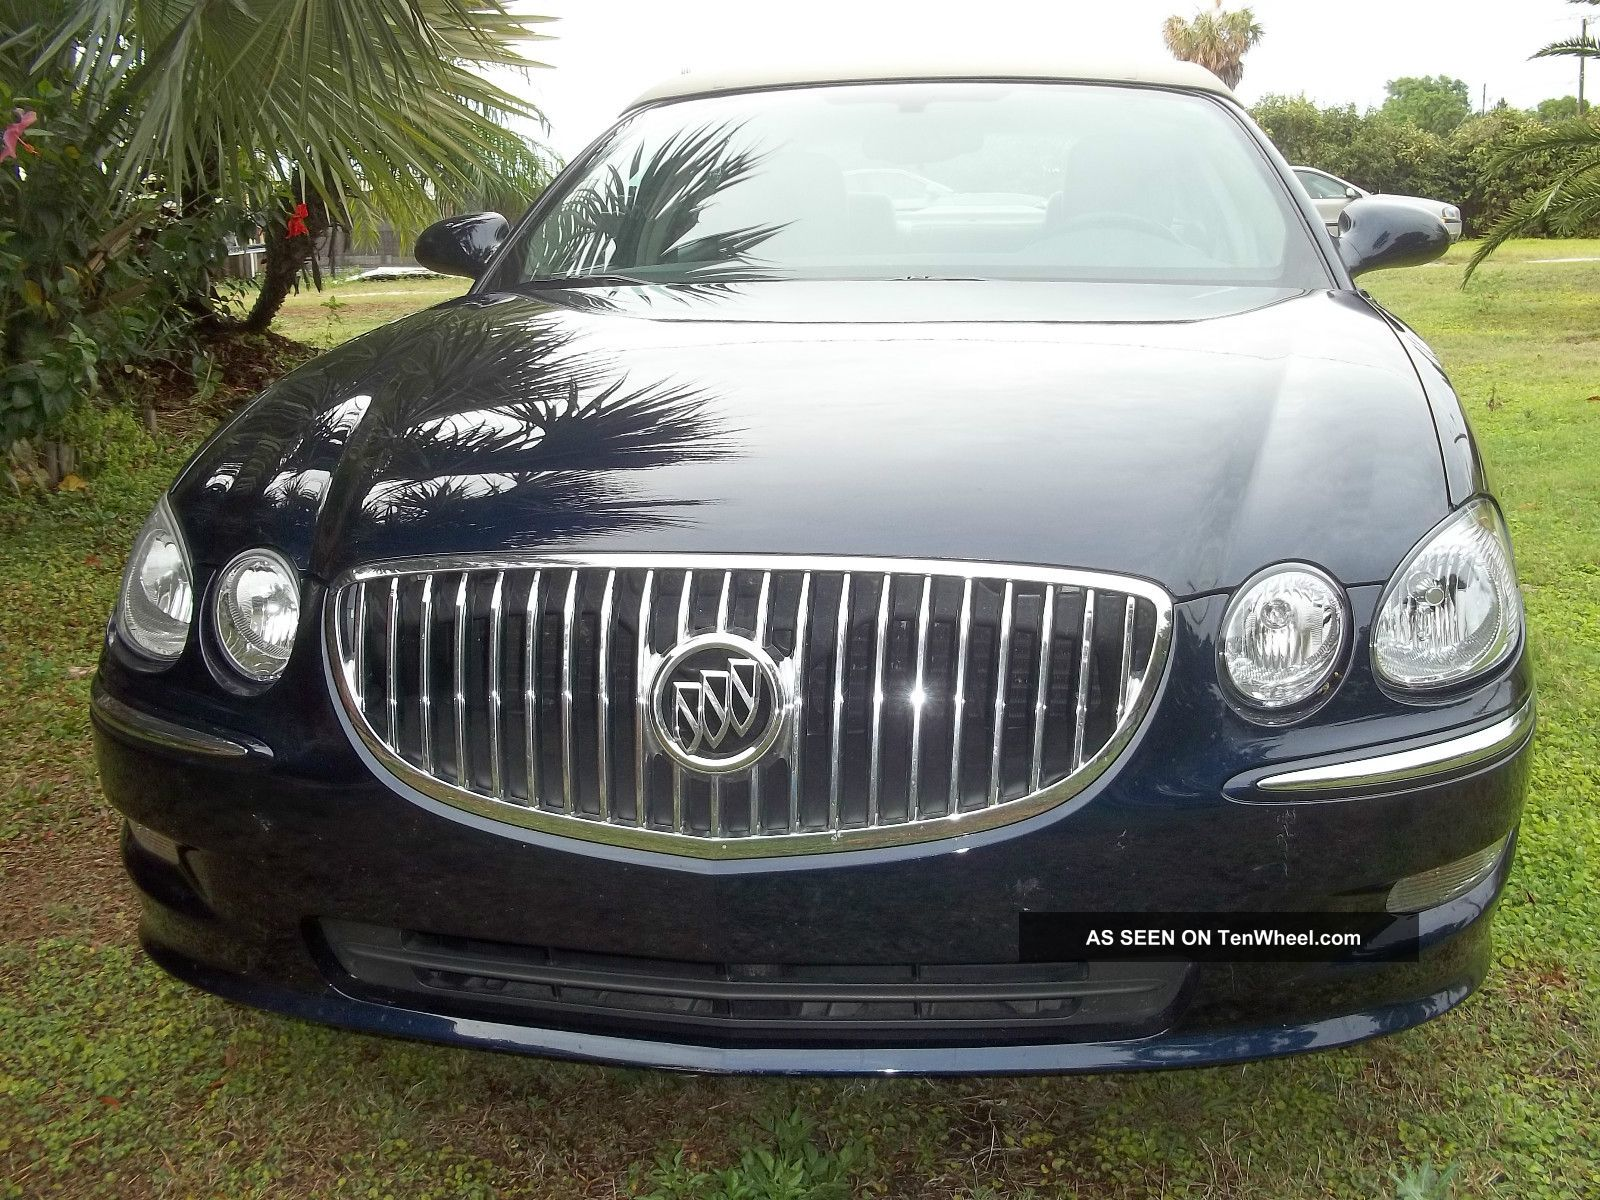 2008 Buick Lacrosse Cx Sedan 4 Door 3 8l